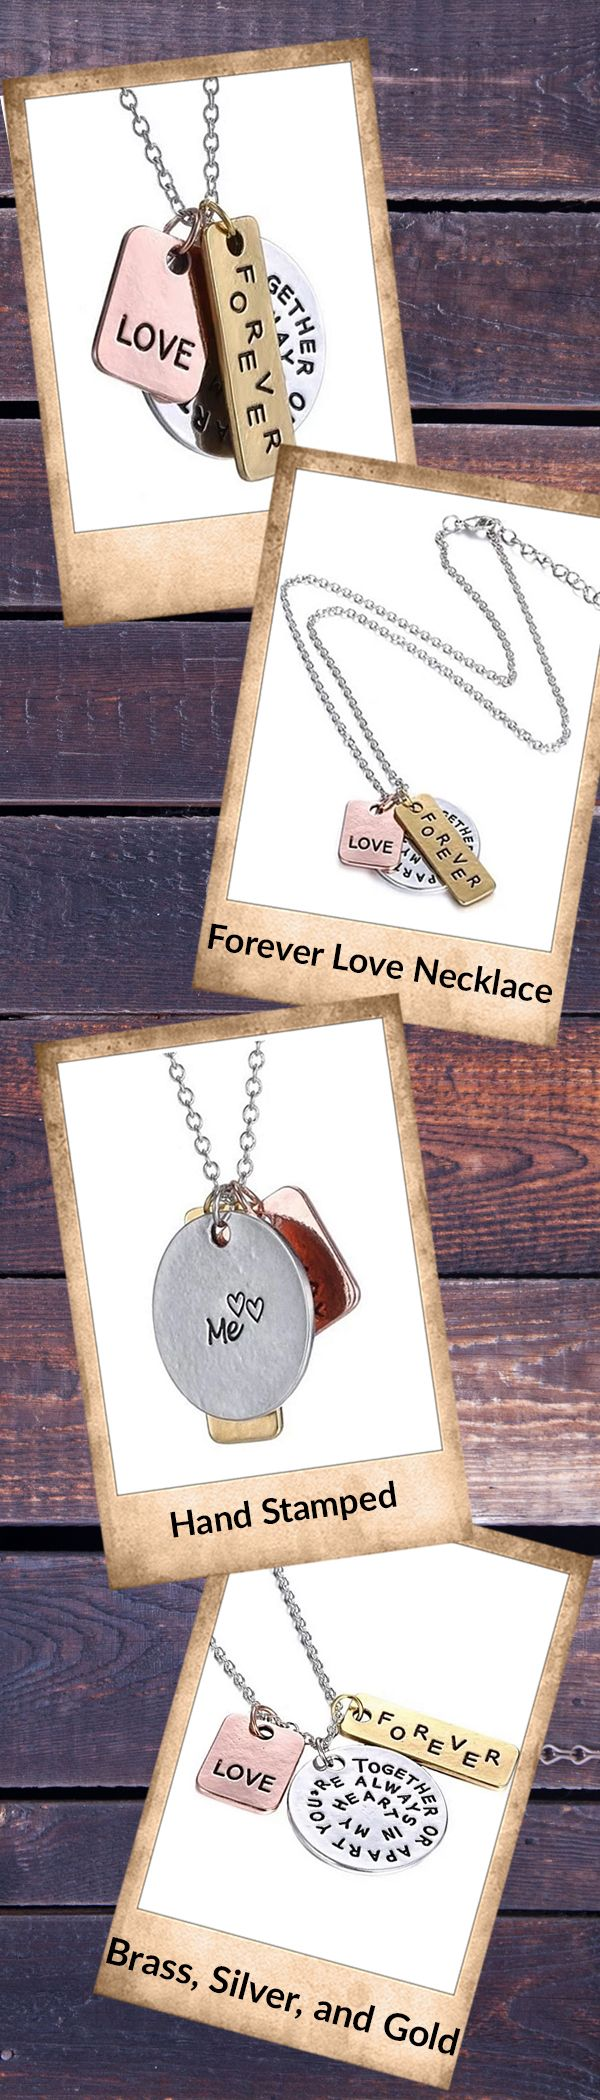 "Express your love with this gorgeous hand-stamped ""Forever Love"" necklace. Featuring 3 charms (brass, silver, and gold colored), this necklace would make a perfect gift for a loved one or for yourself!"